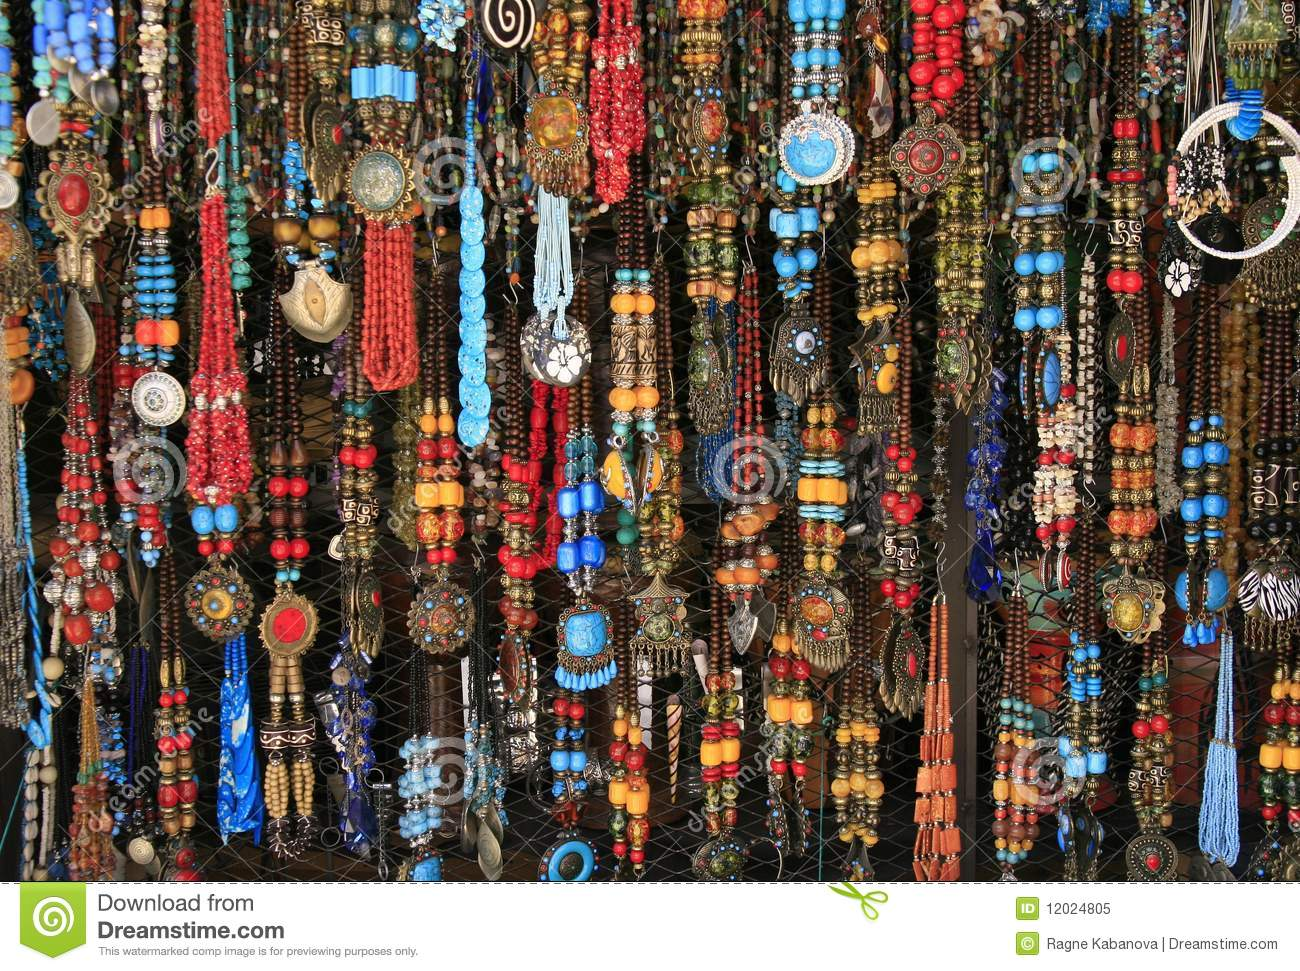 Royalty Free Stock Photo Ethnic Necklaces Village Market Morocco Image12024805 on murano engine